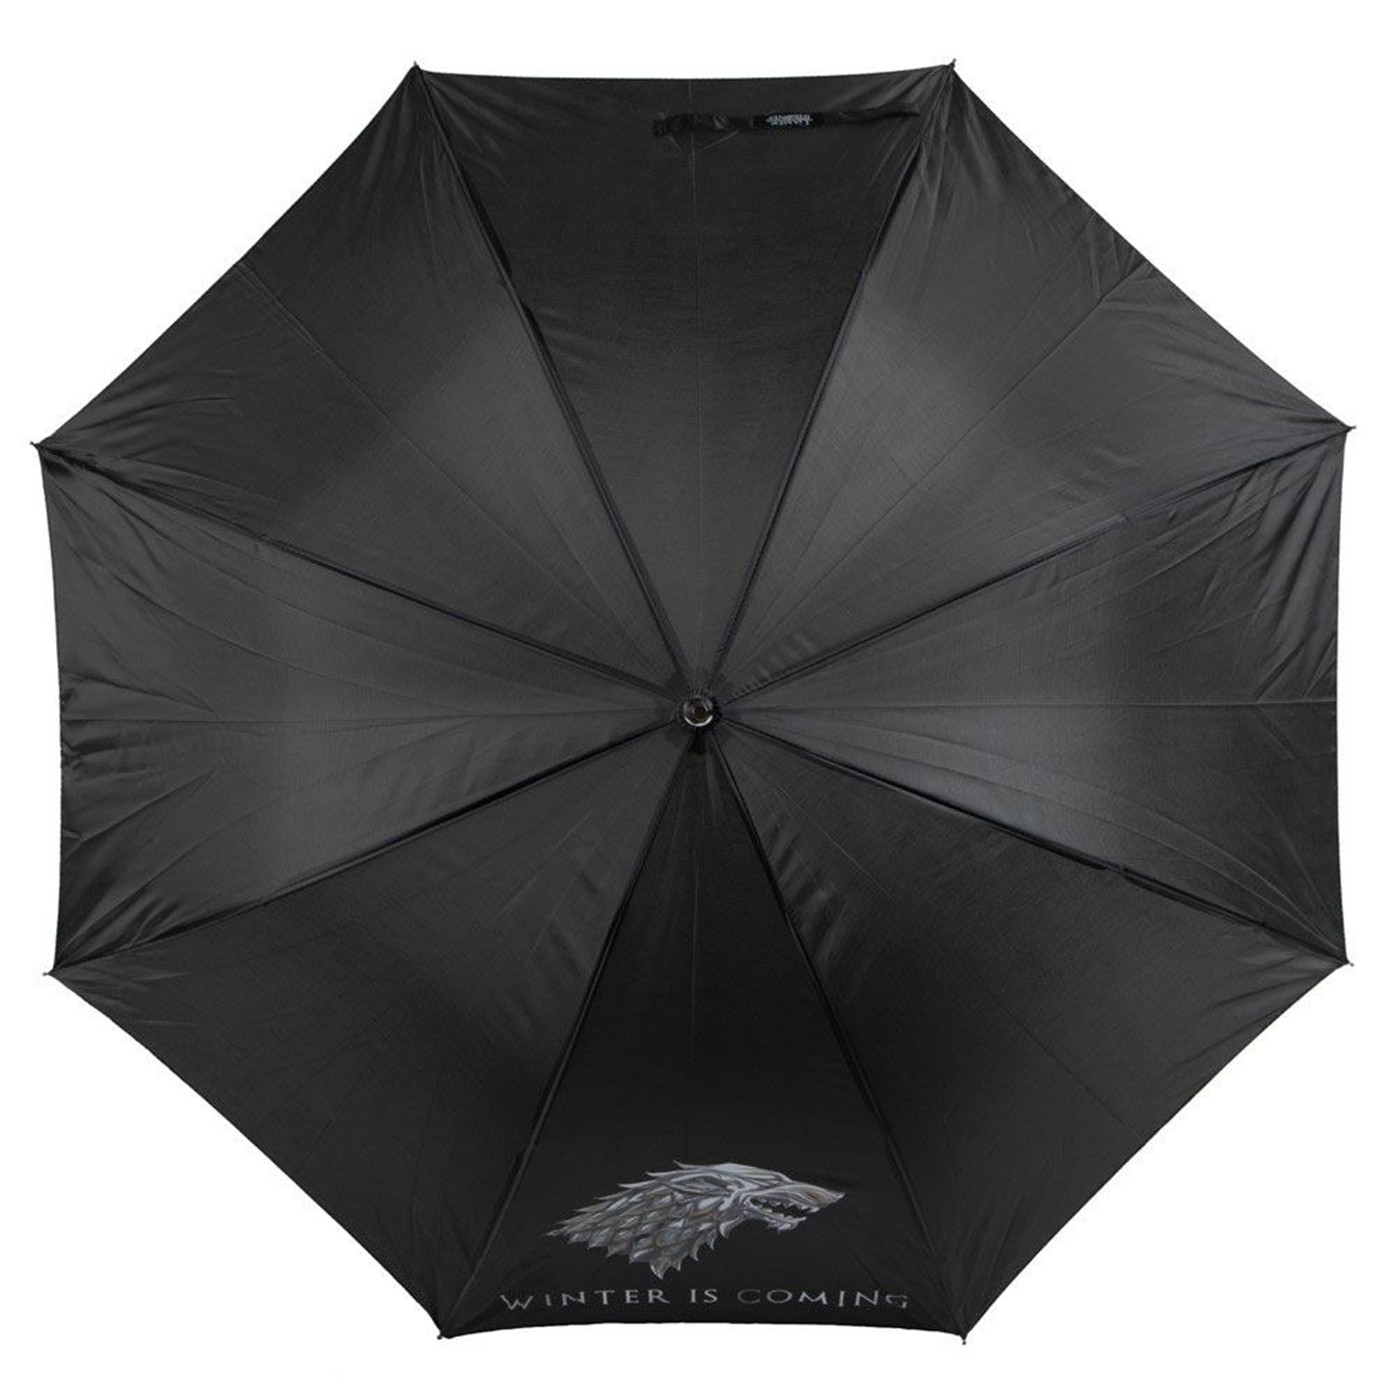 Game of Thrones Stark Molded Handle Umbrella